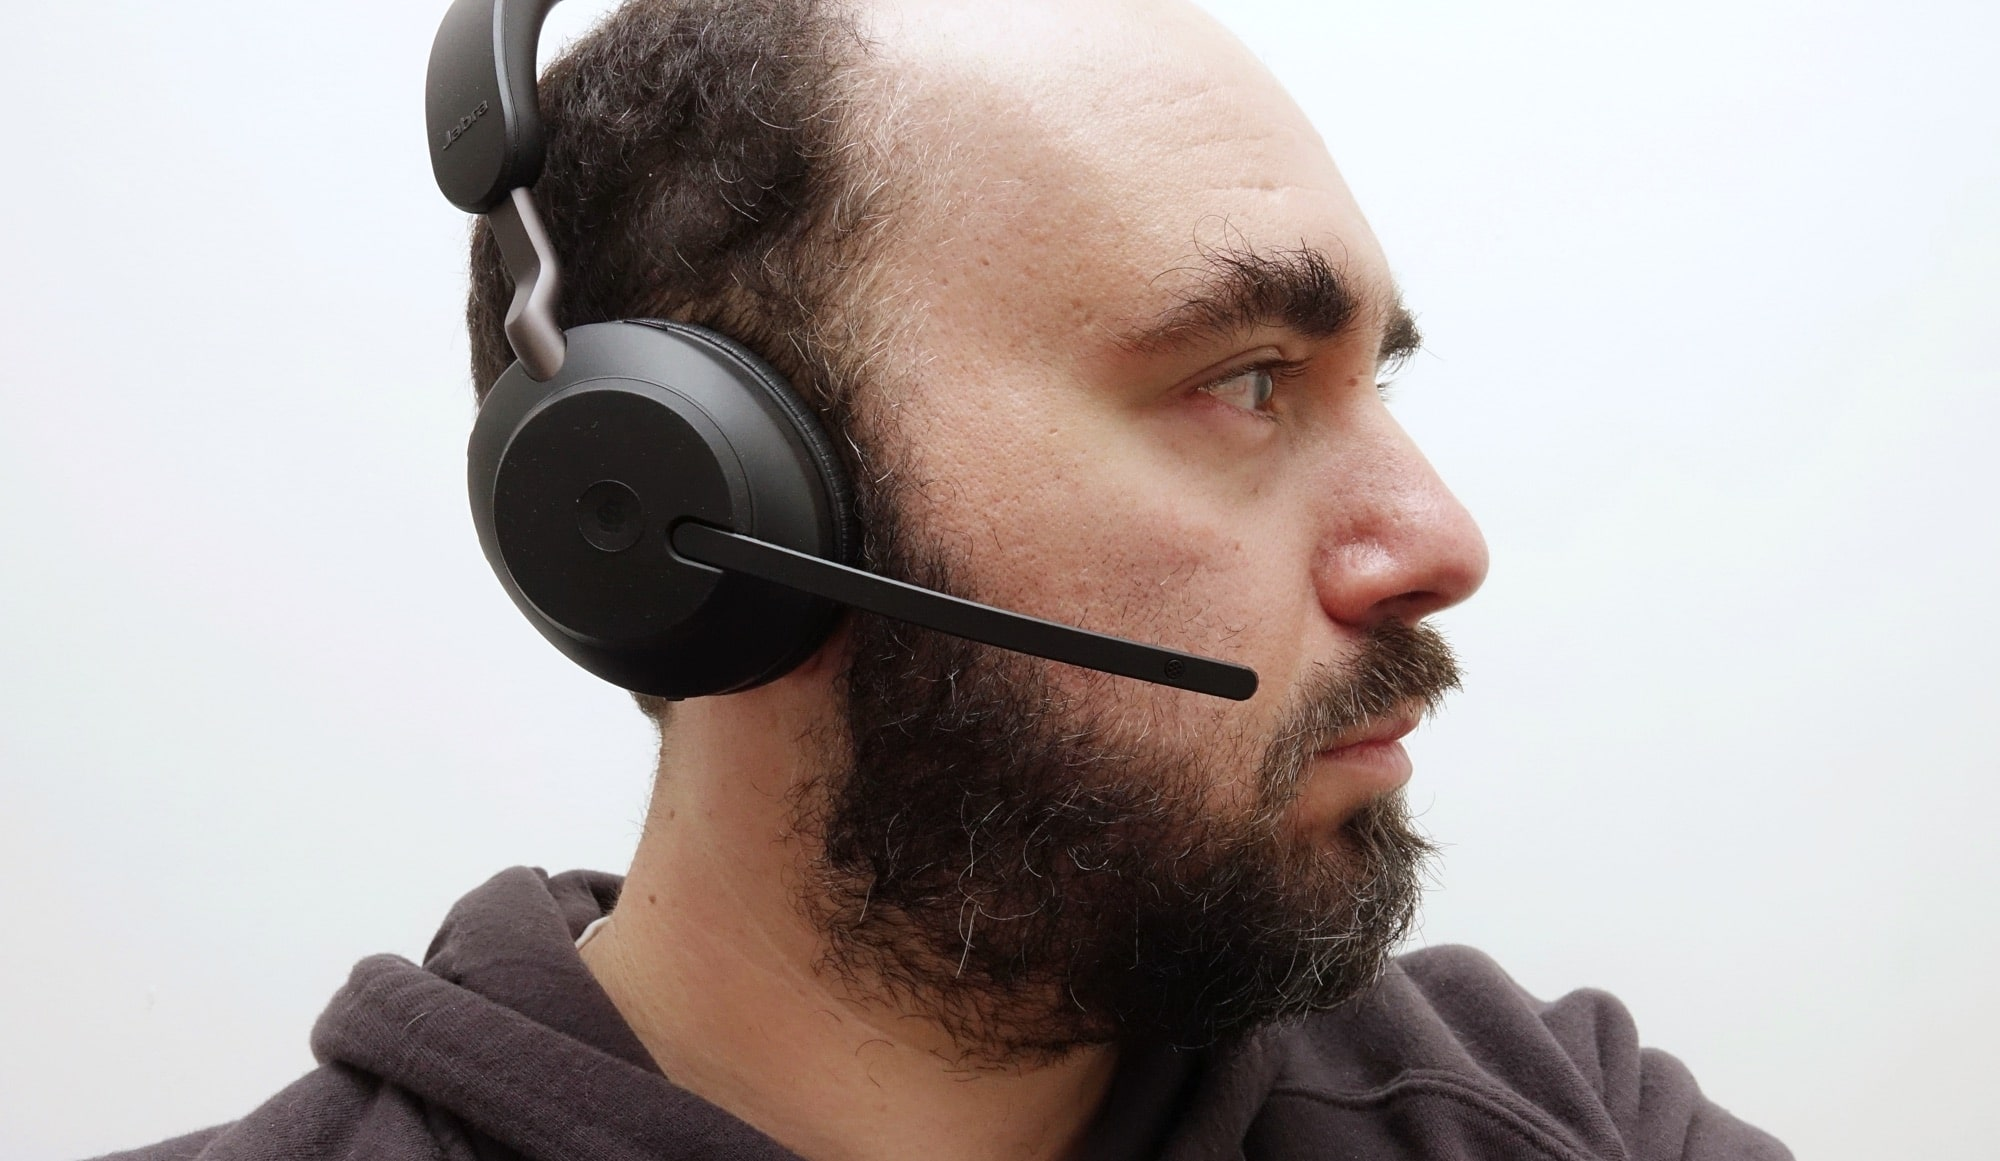 Wearing the Jabra Evolve2 65 wireless headphones